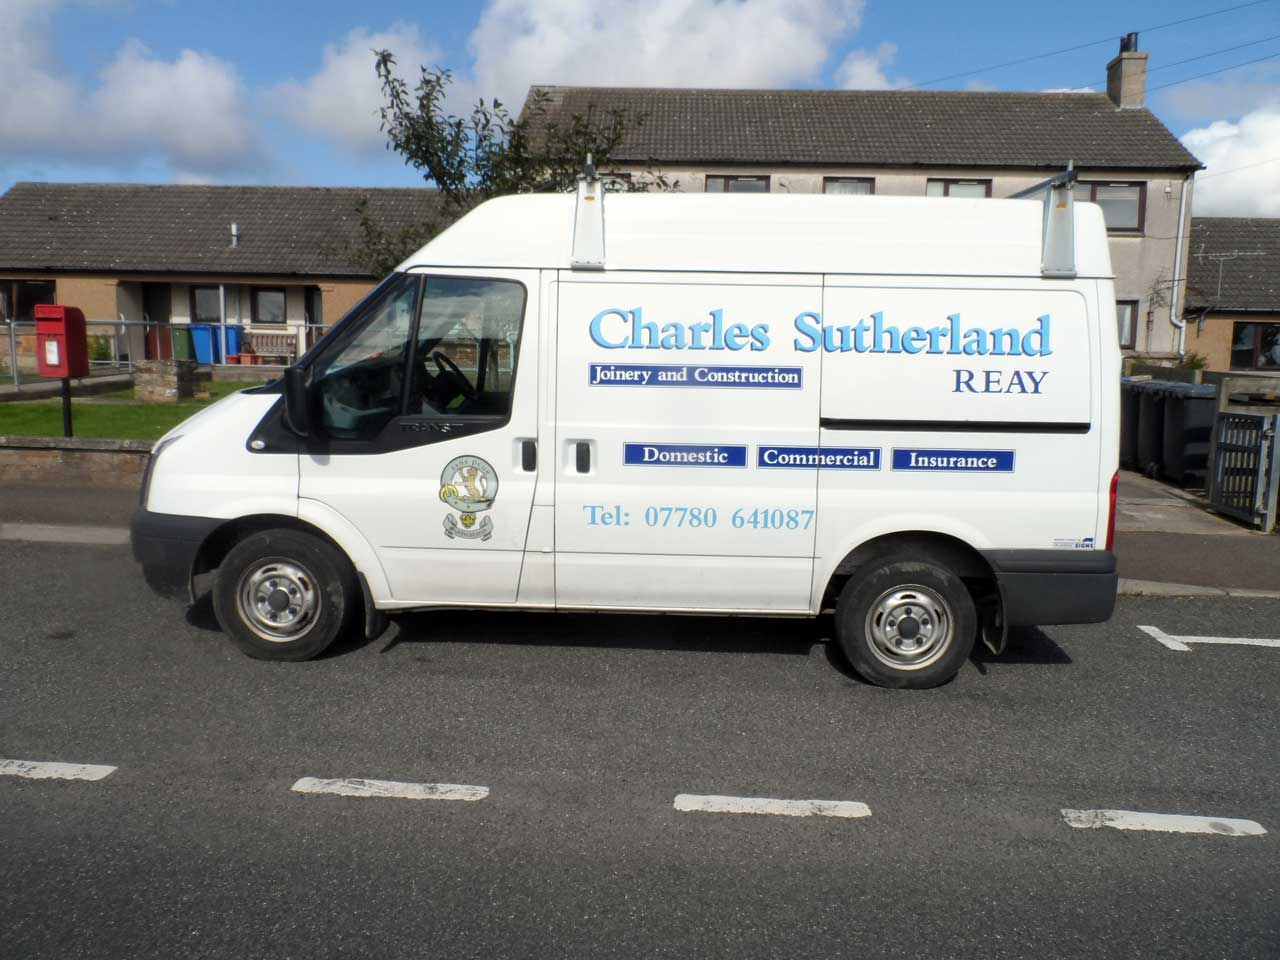 Photo: Charles Sutherland - Joinery